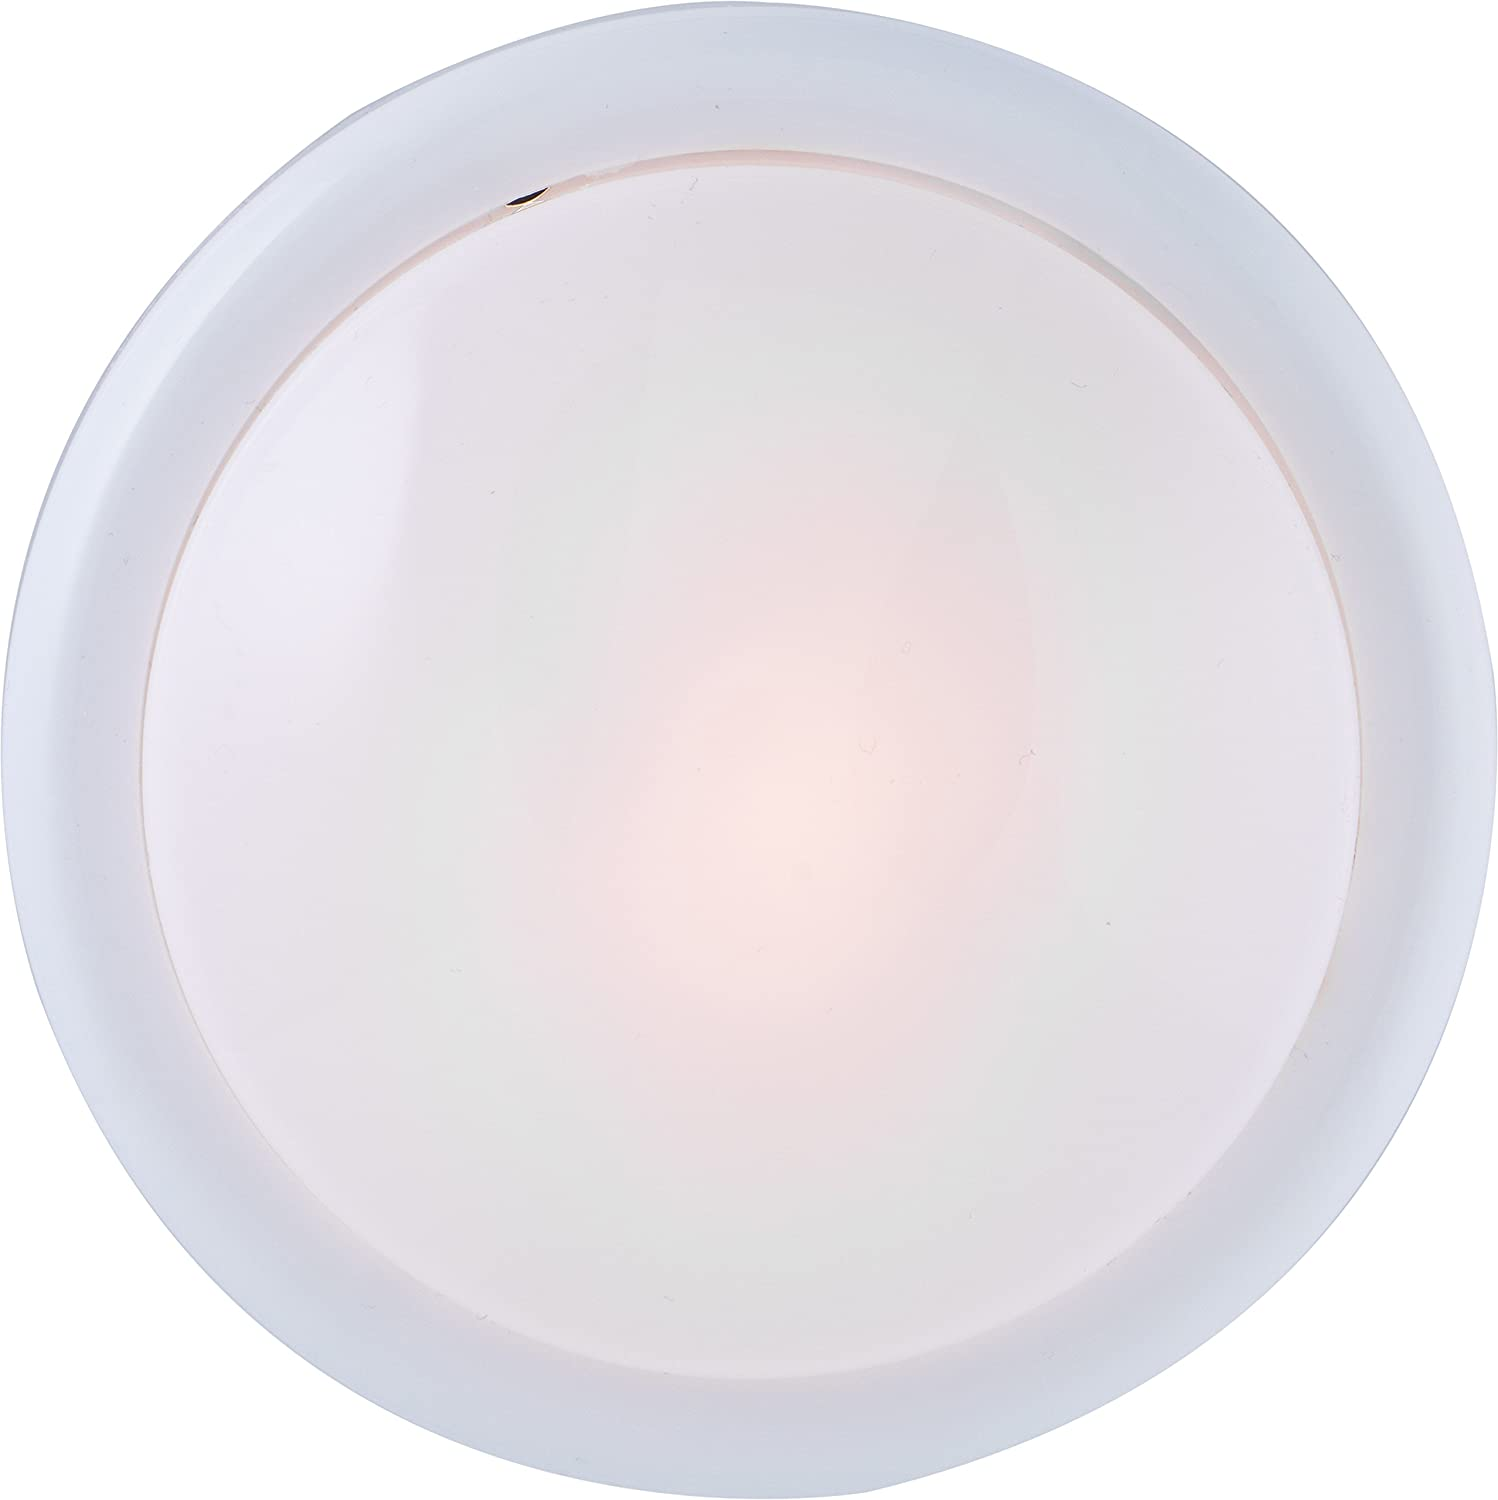 GE Round Tap Light, Battery Operated, White, Push On/Off, Wireless, Portable and Convenient, Perfect for Under Cabinets, Closet, Attic, Nightstand, Nursery, Bathroom, Hallway, 54807